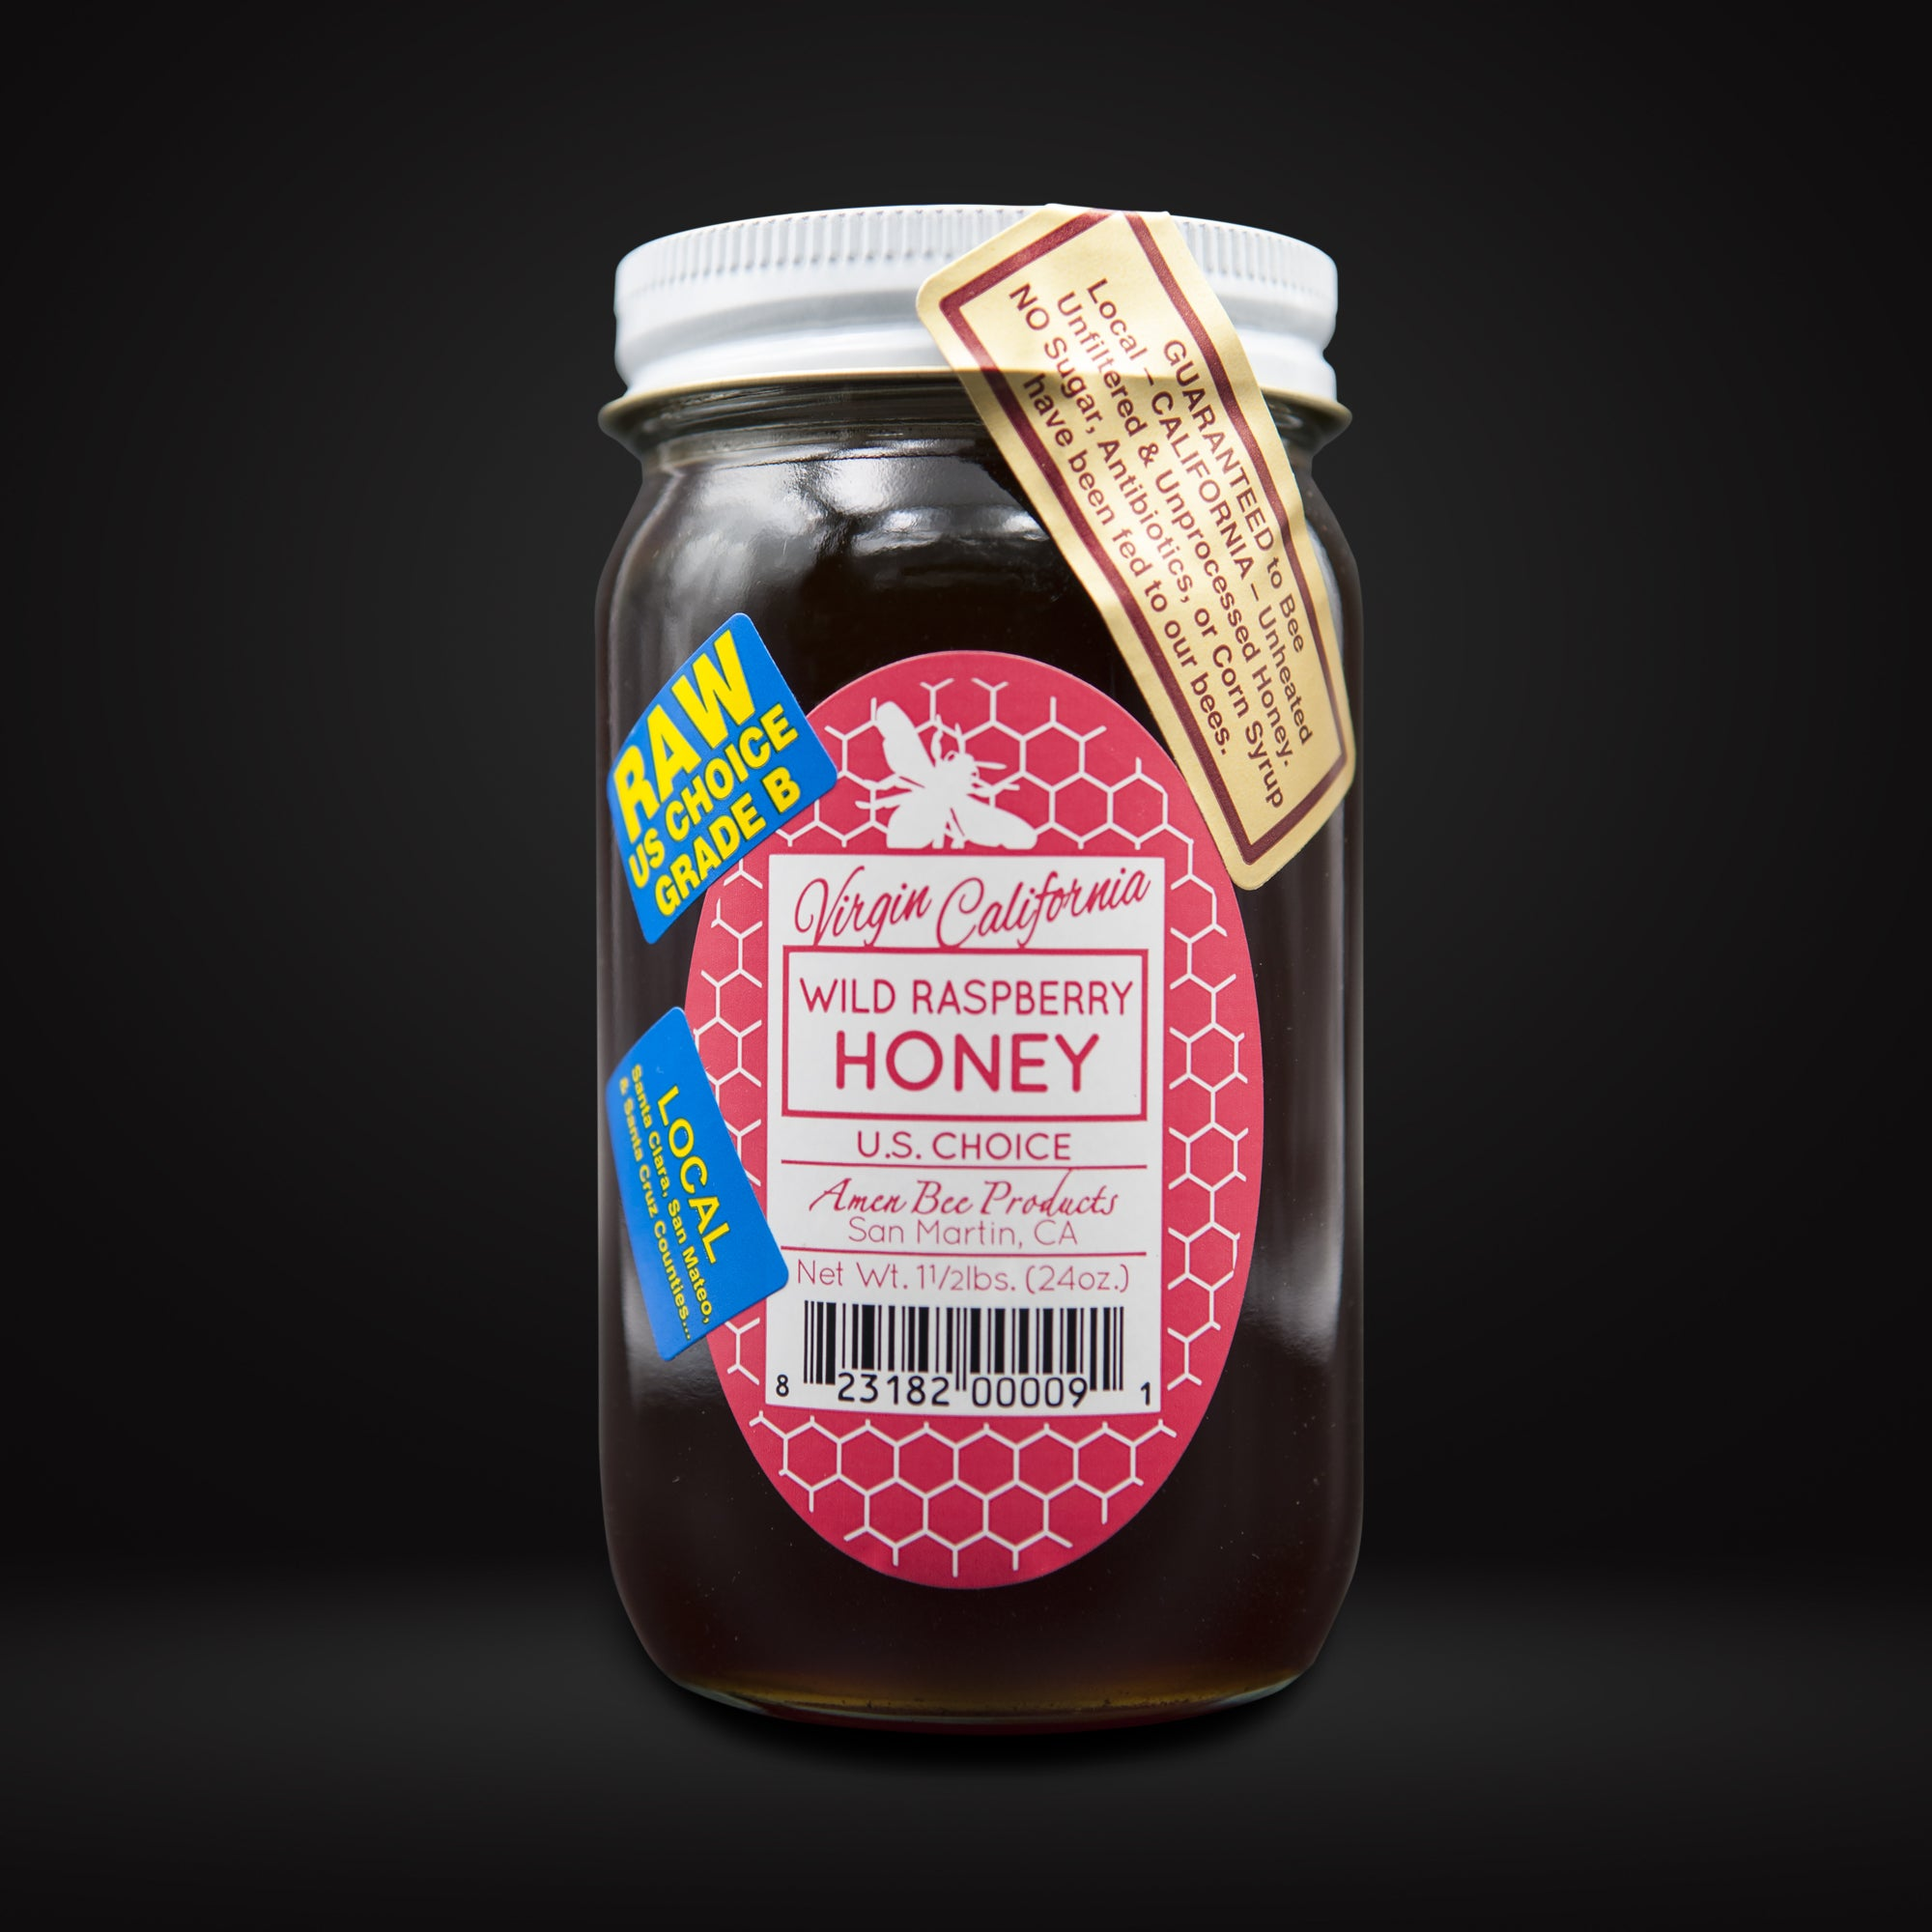 Wild Raspberry Honey